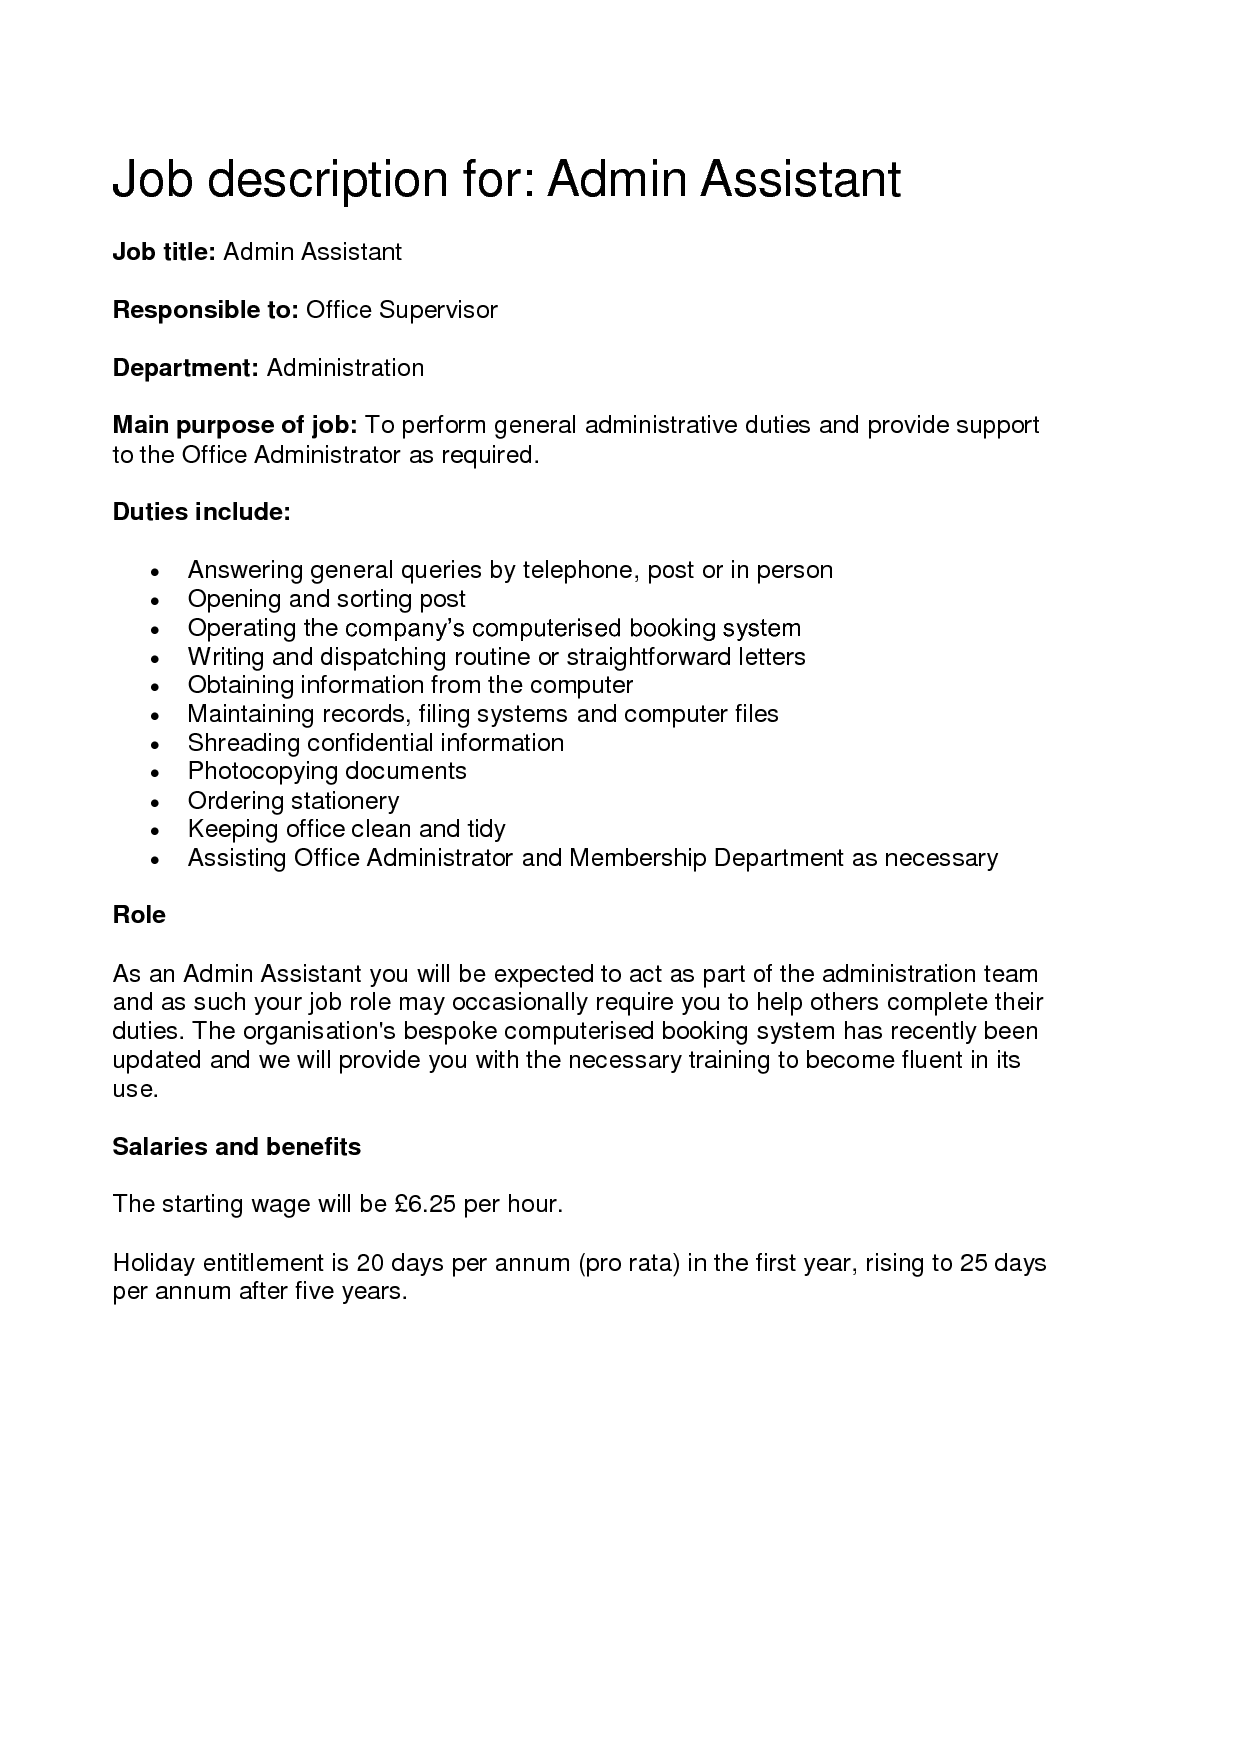 Administrative Assistant Job Description Sample